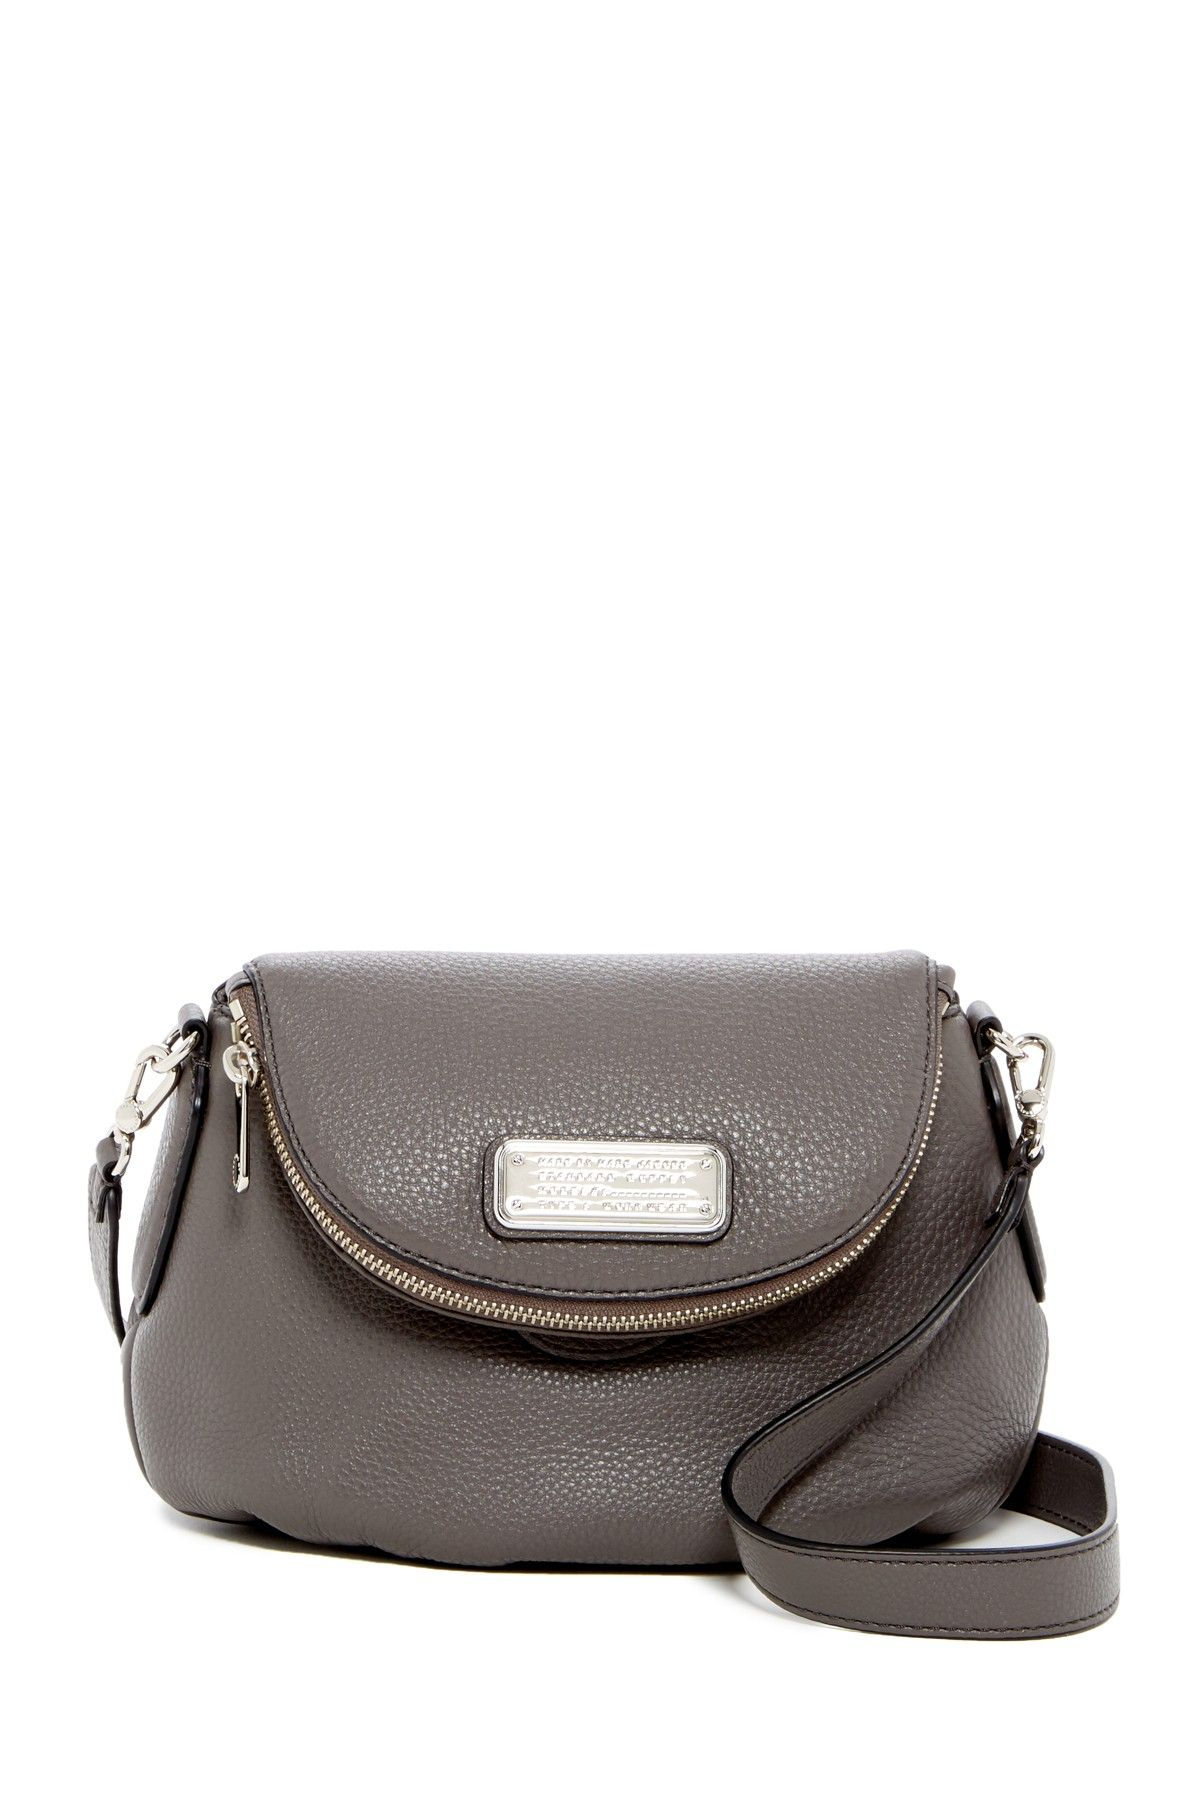 6657597caeb1 Mini Natasha Leather Crossbody by Marc by Marc Jacobs on  nordstrom rack